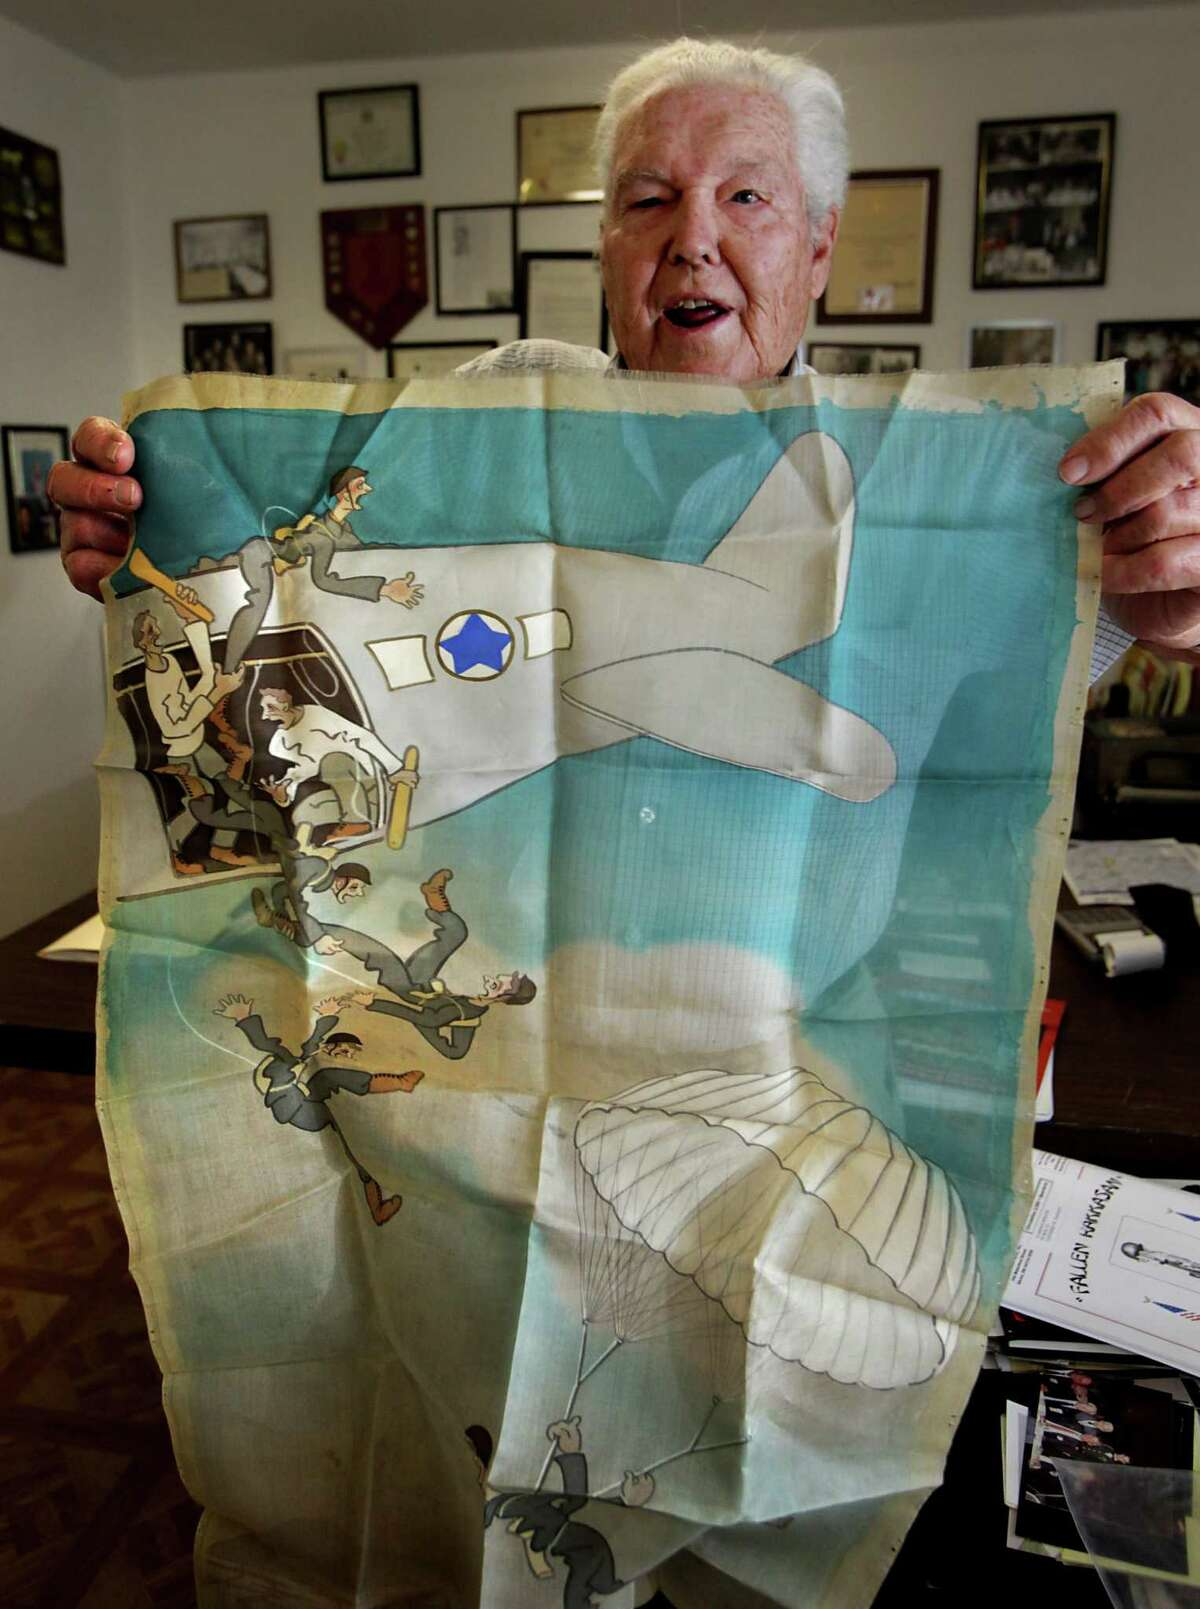 """Metro adv - Retired Army Capt. Clarence Sprouse, holding up a Japanese military propaganda poster printed on silk, recalls his days fighting in WWII, Korea, Vietnam, and as trainer for the Cuban Bay of Pigs. The poster insinuates the U.S. forced soldiers to serve in the army. Sprouse has been called """"The Perfect Soldier"""" by some of his superiors. Friday, Oct. 14, 2011. Photo Bob Owen/rowen@express-news.net"""